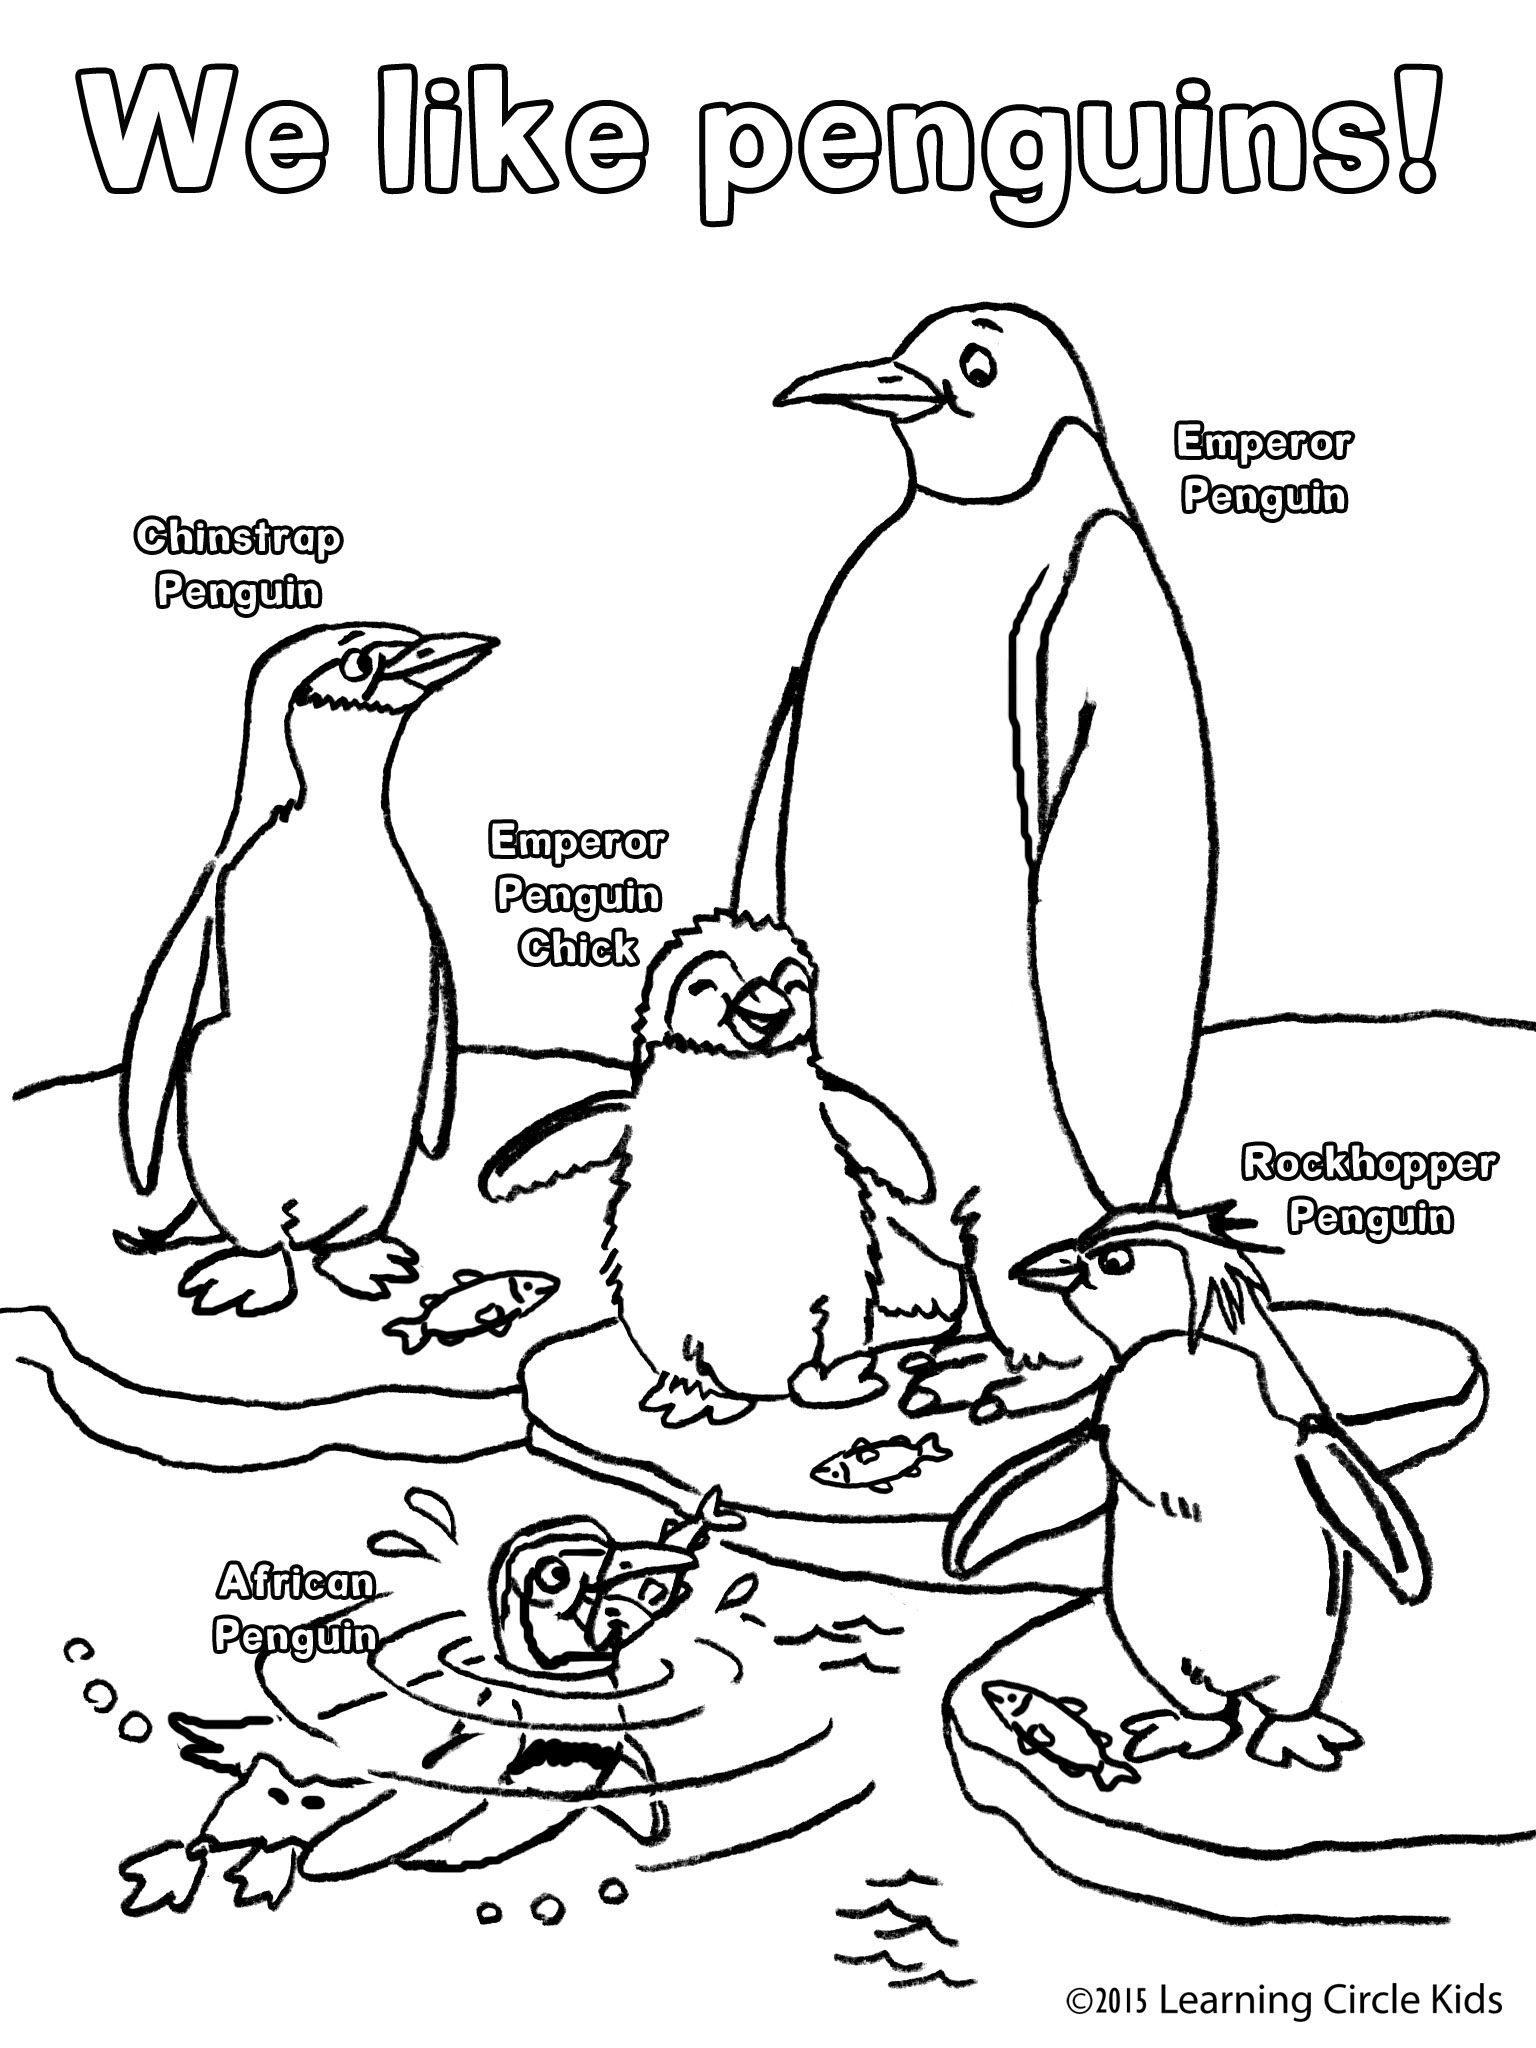 Free penguin coloring page from